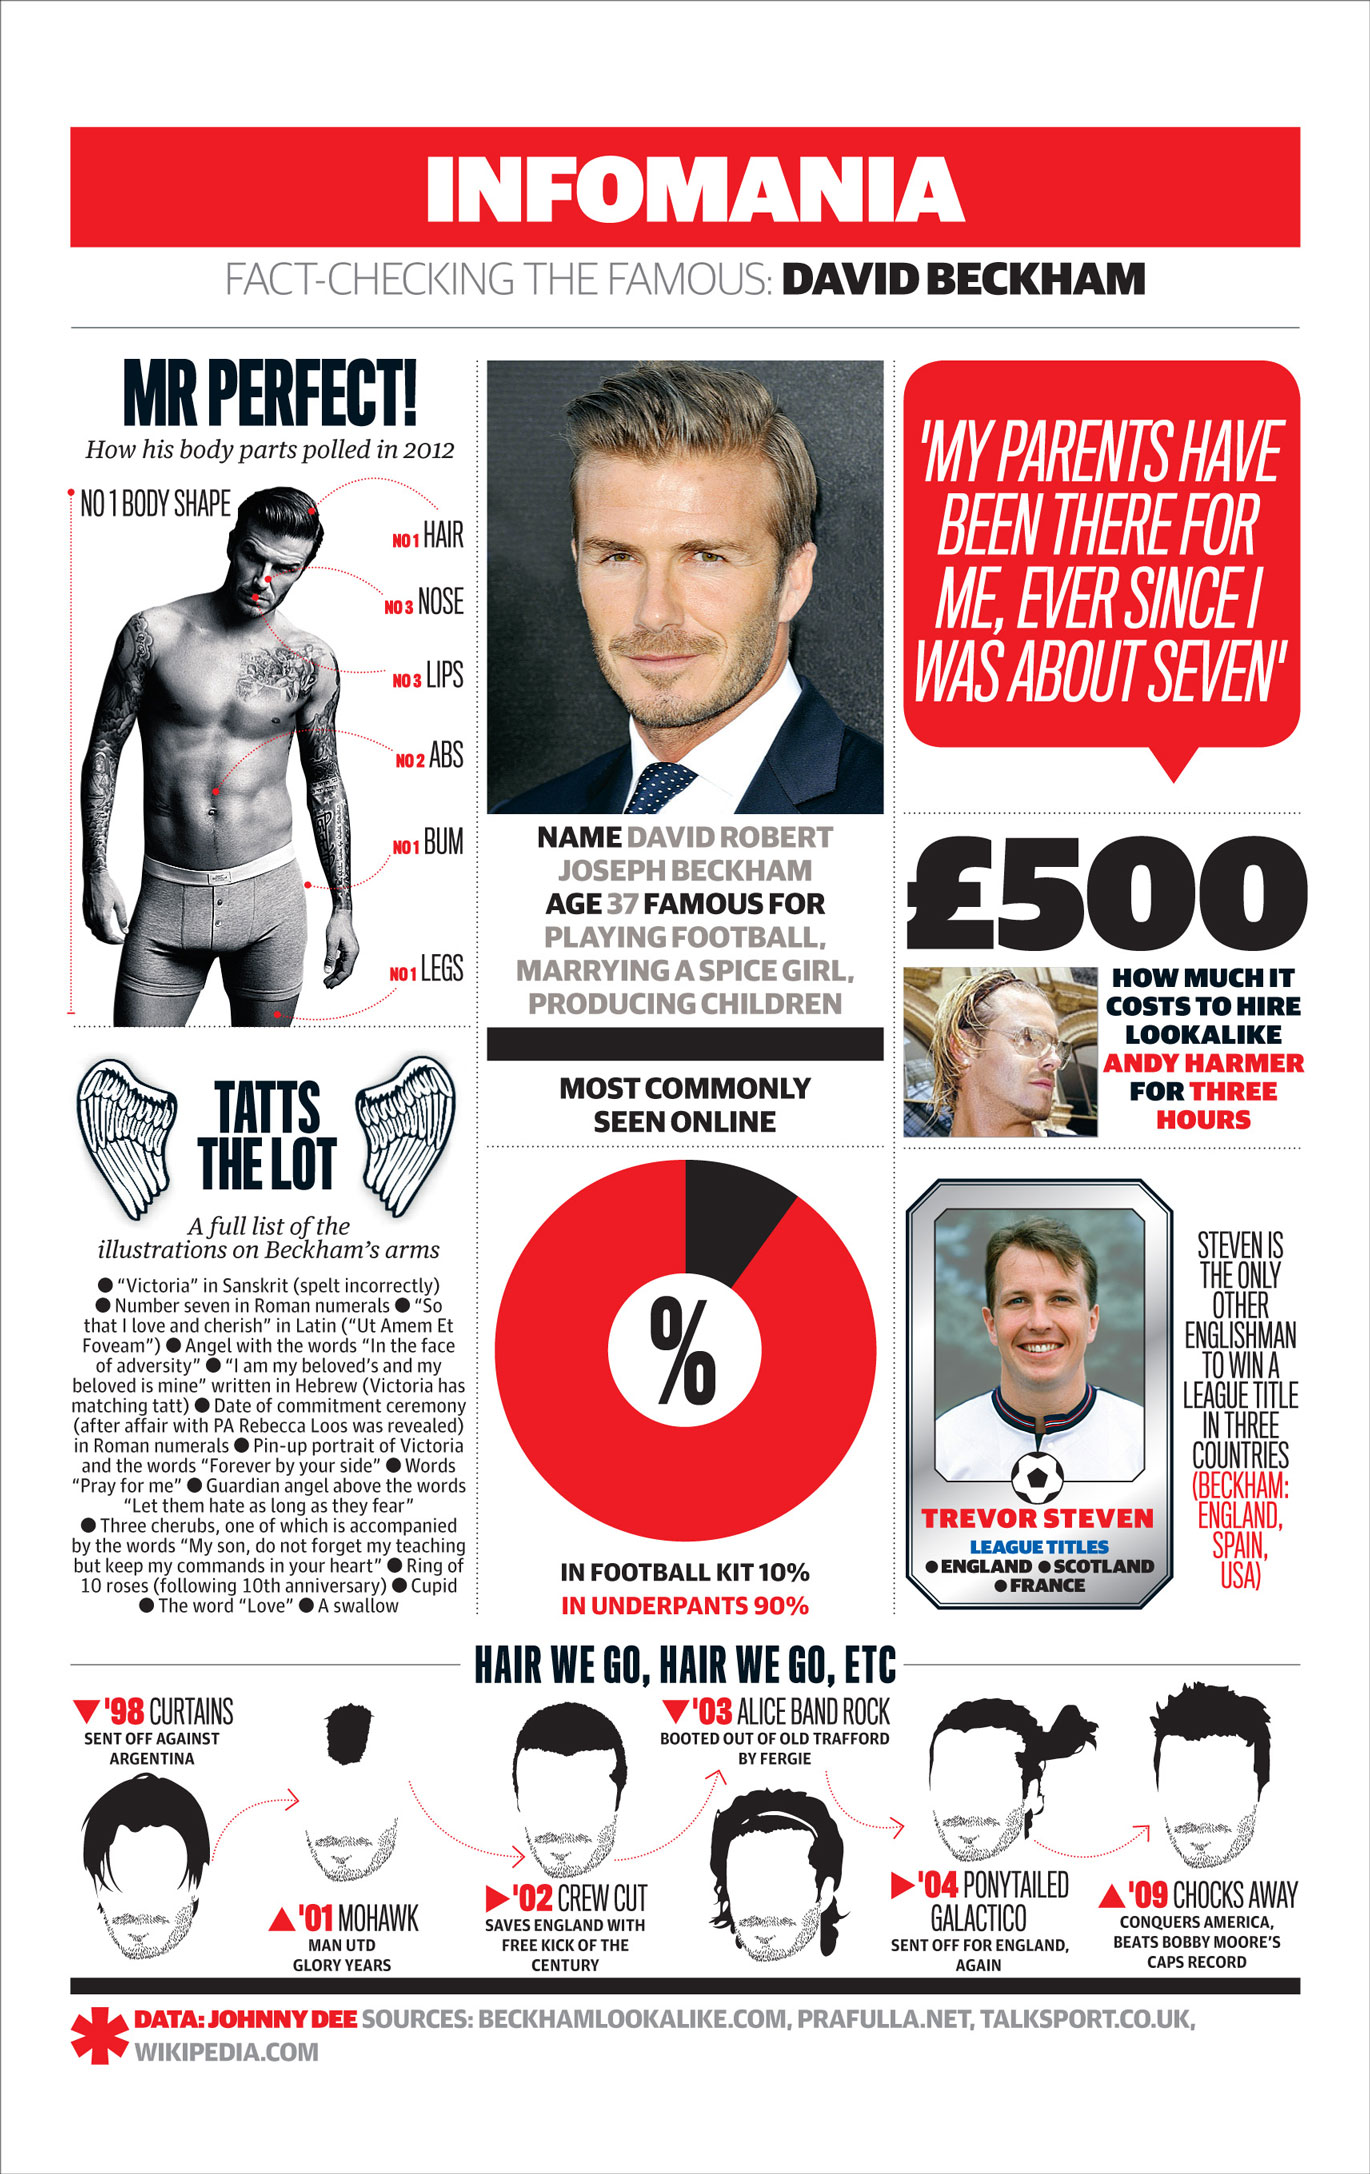 Lights on David Beckham-Infographic